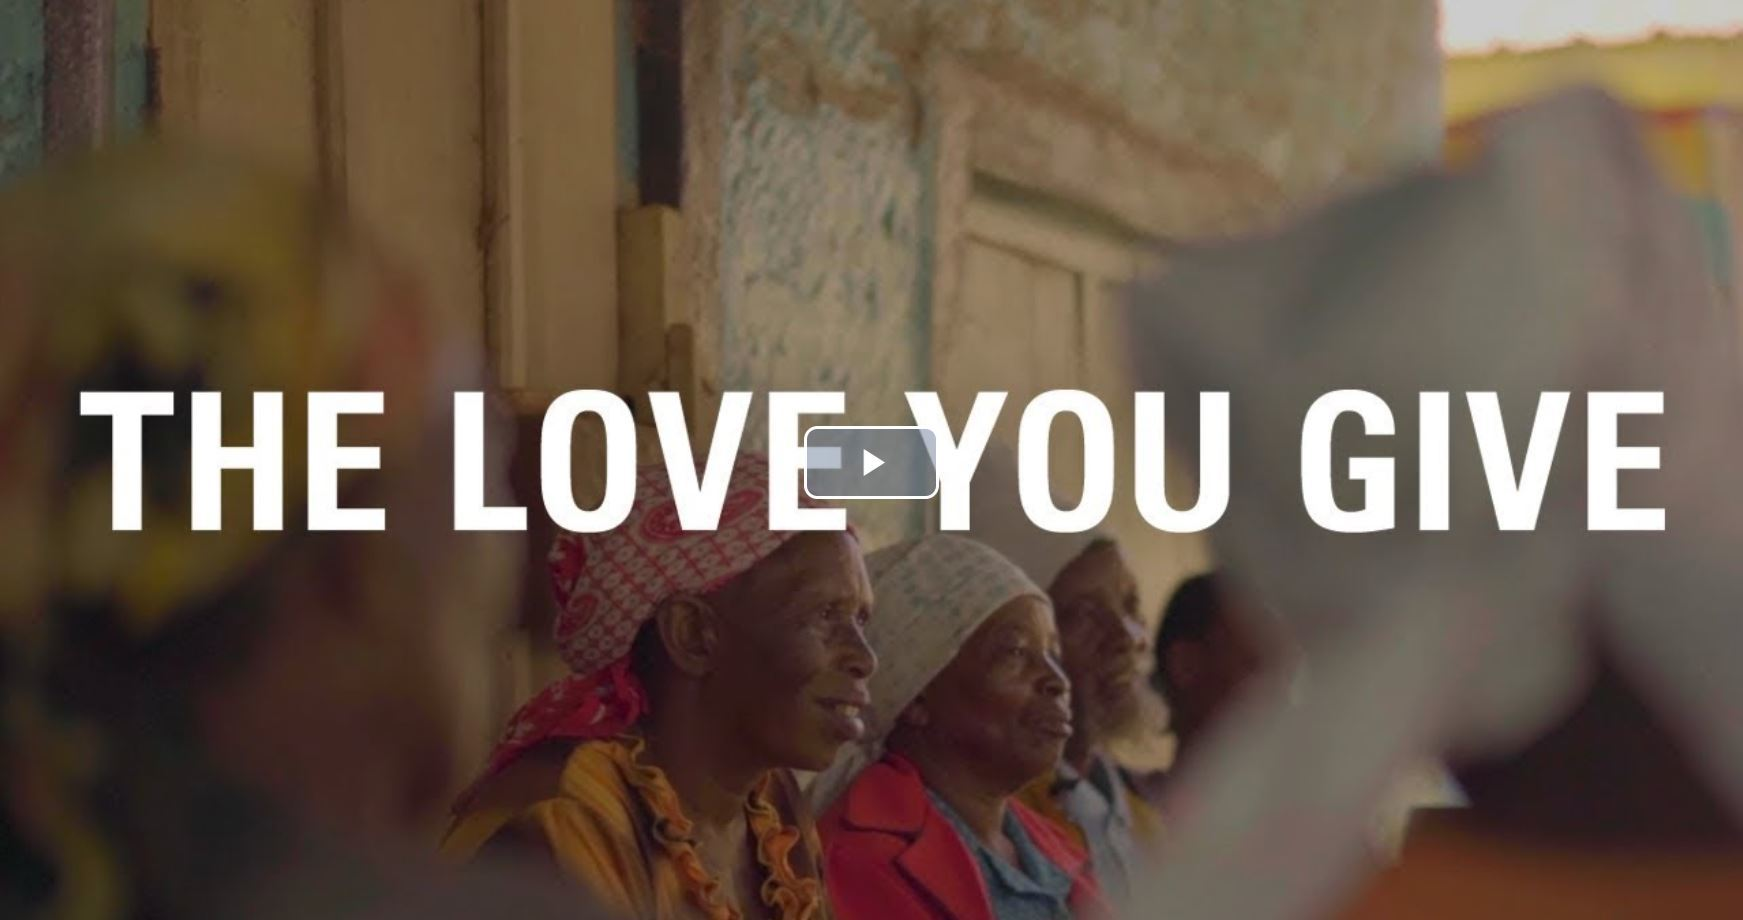 The Love You Give: The Untold Story of Orphanages